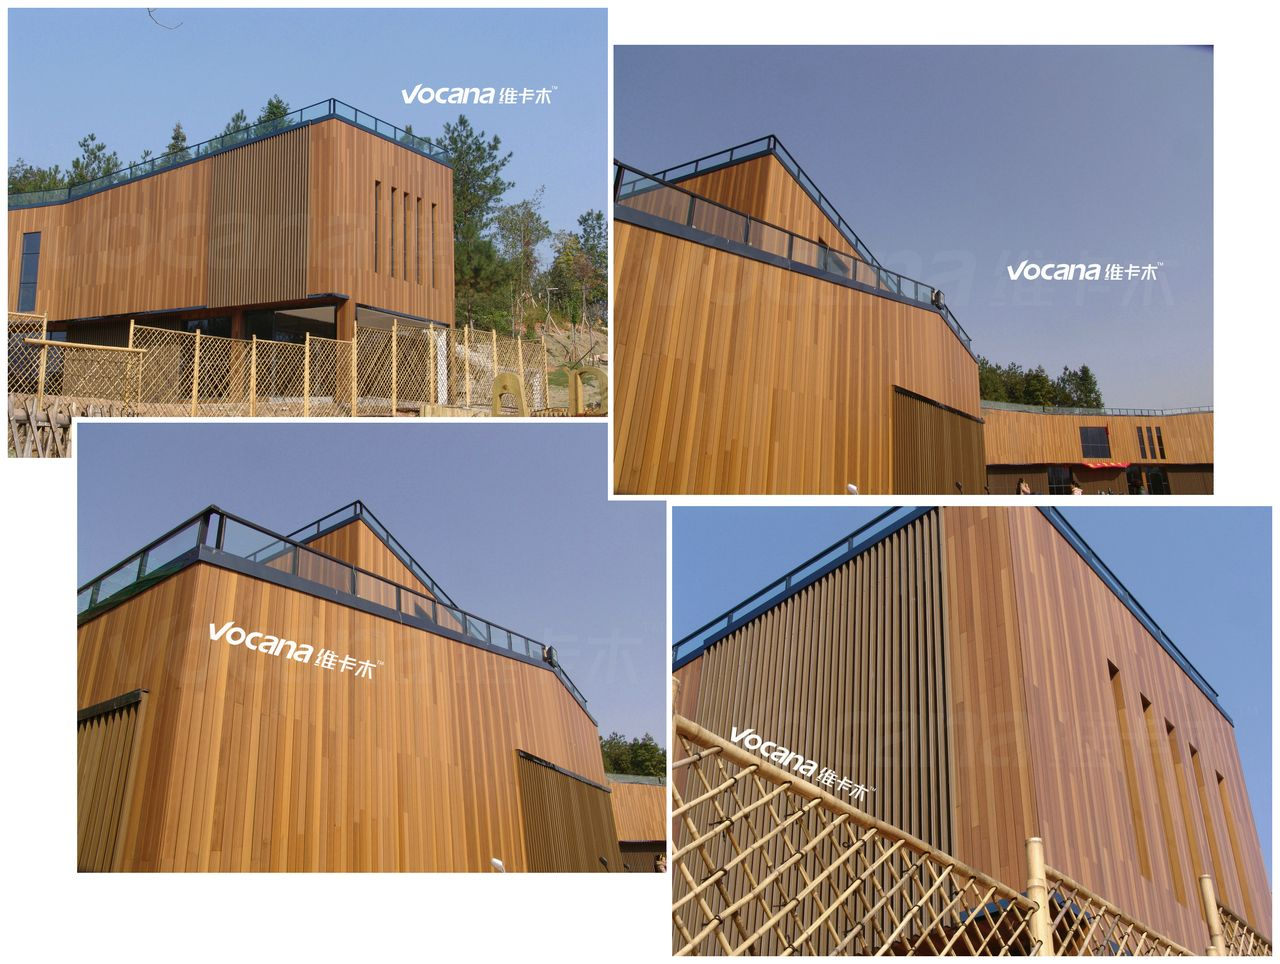 Thermapan Panels Install Cost Attach Privacy Wall To Side Of Deck Outdoor Wall Panels Plastic Decking Wall Paneling